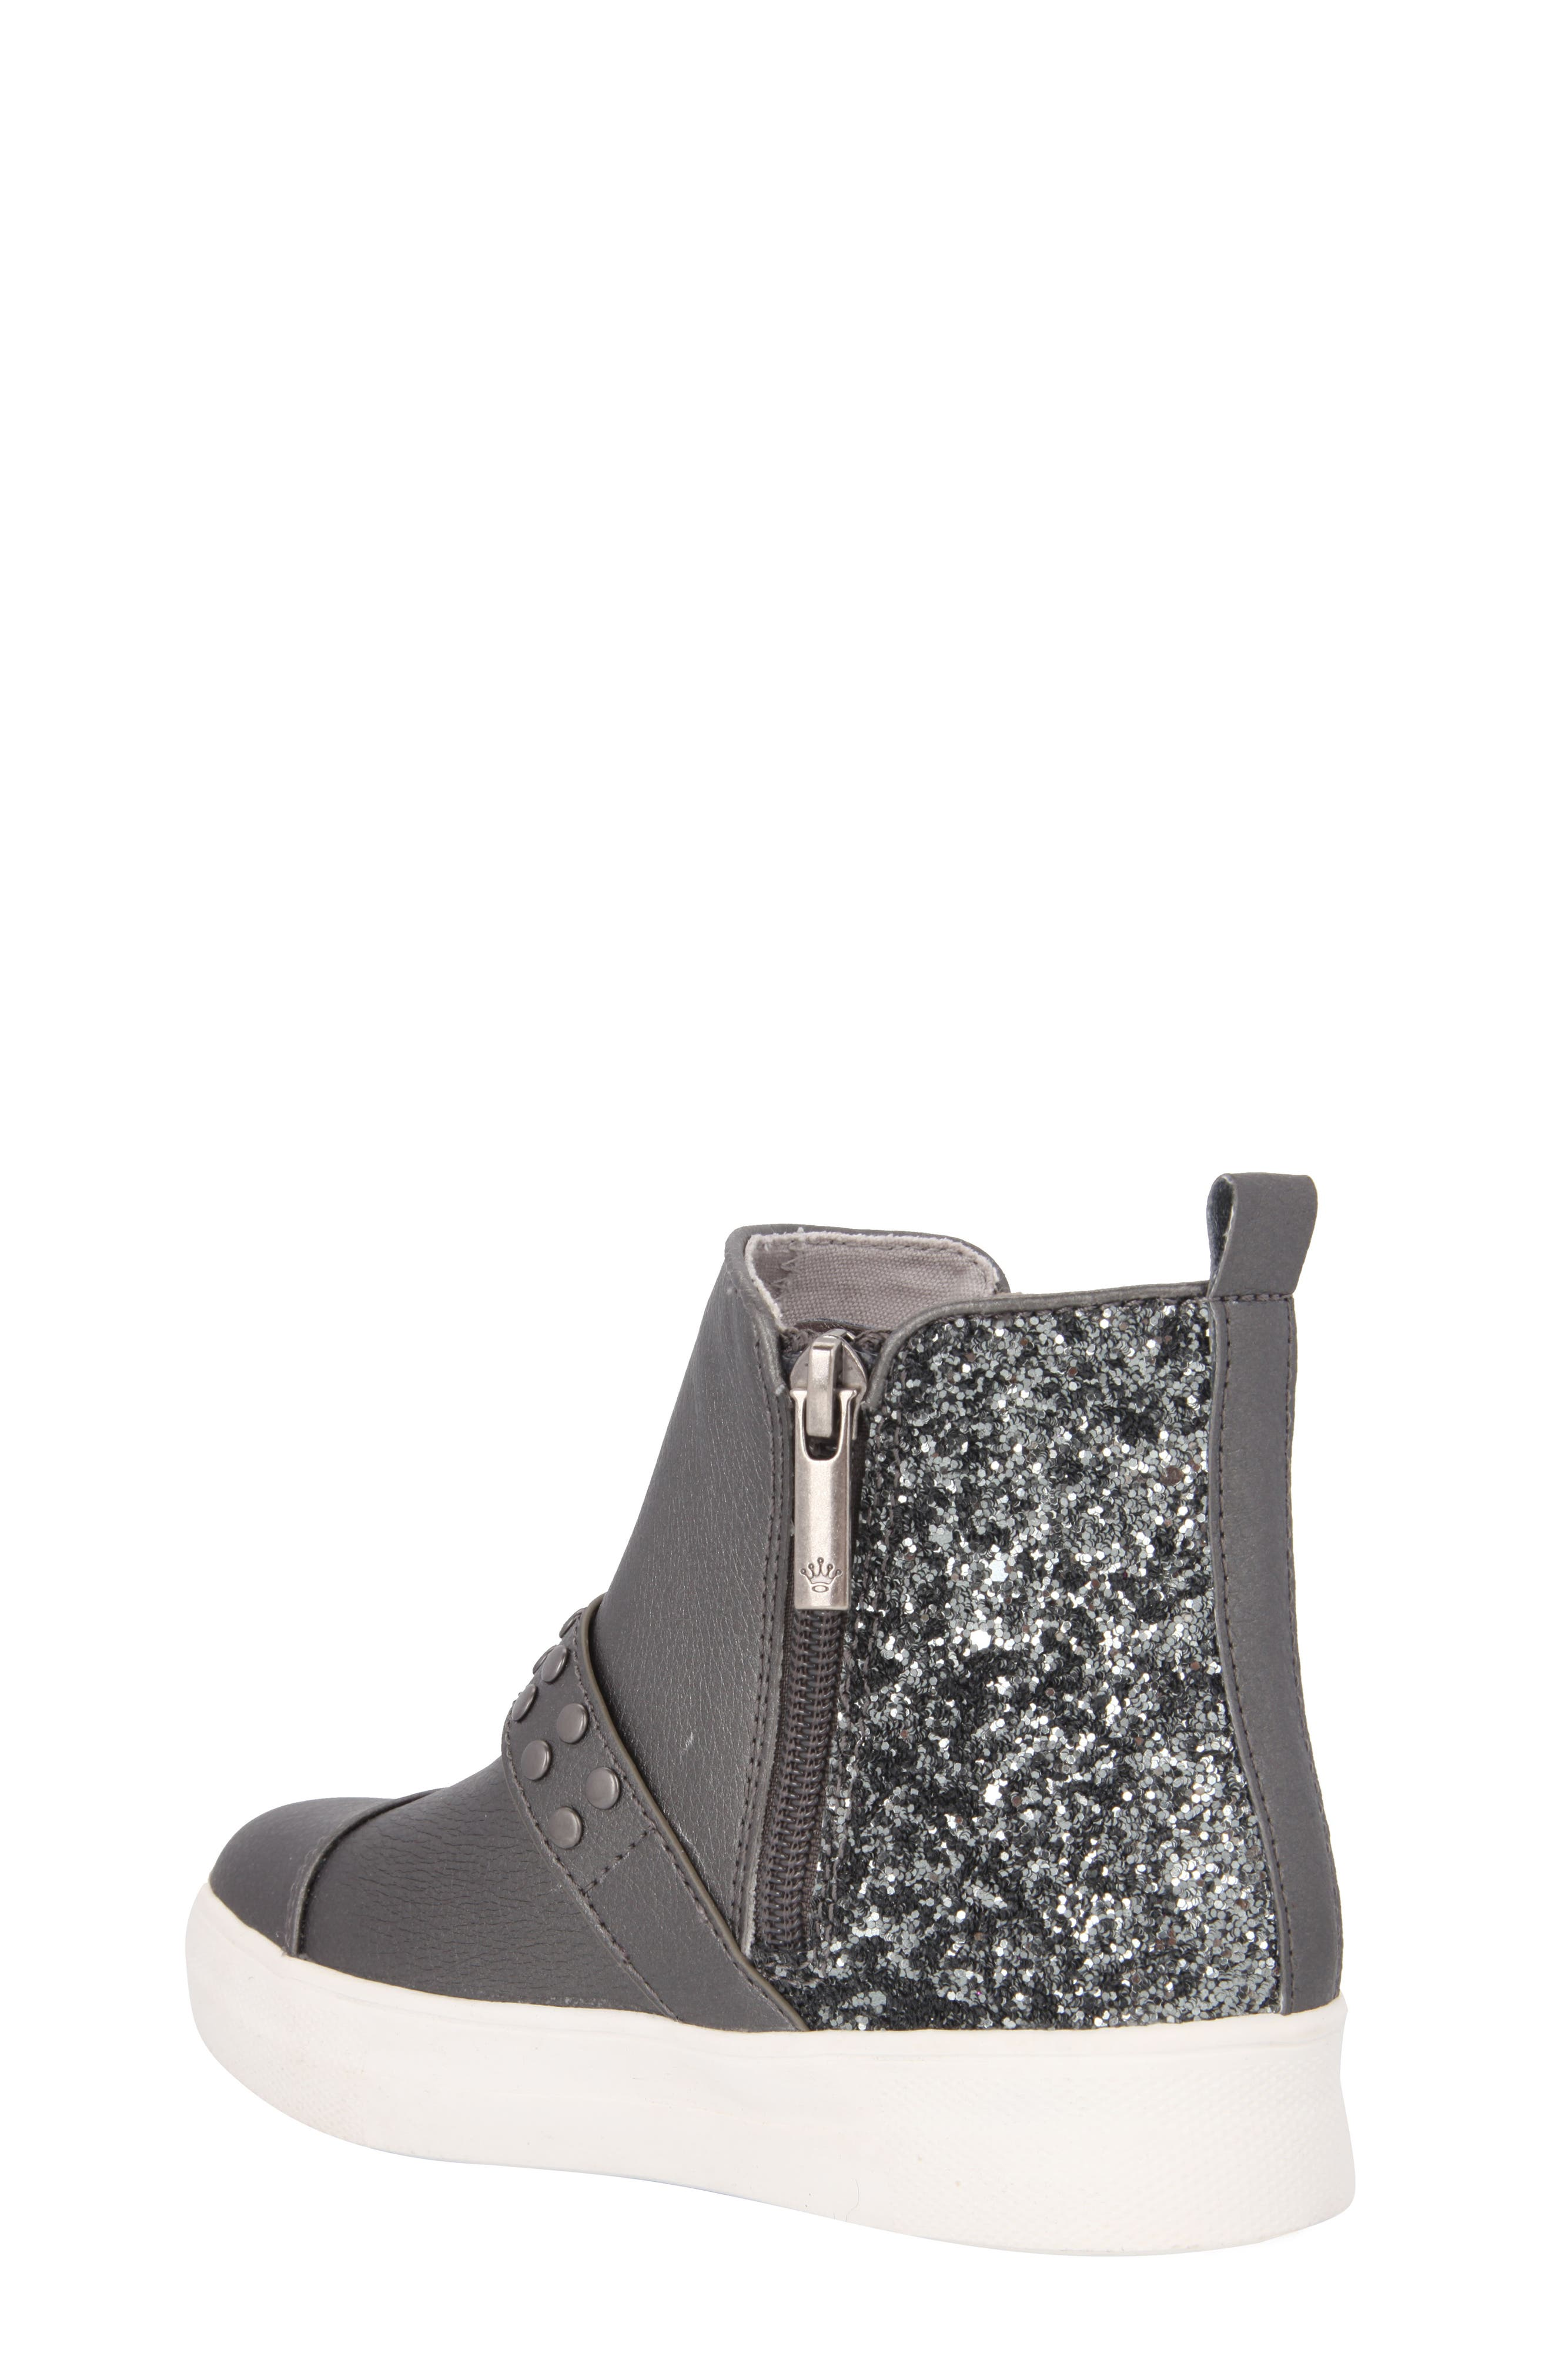 Pammela Glittery High Top Sneaker,                             Alternate thumbnail 2, color,                             042